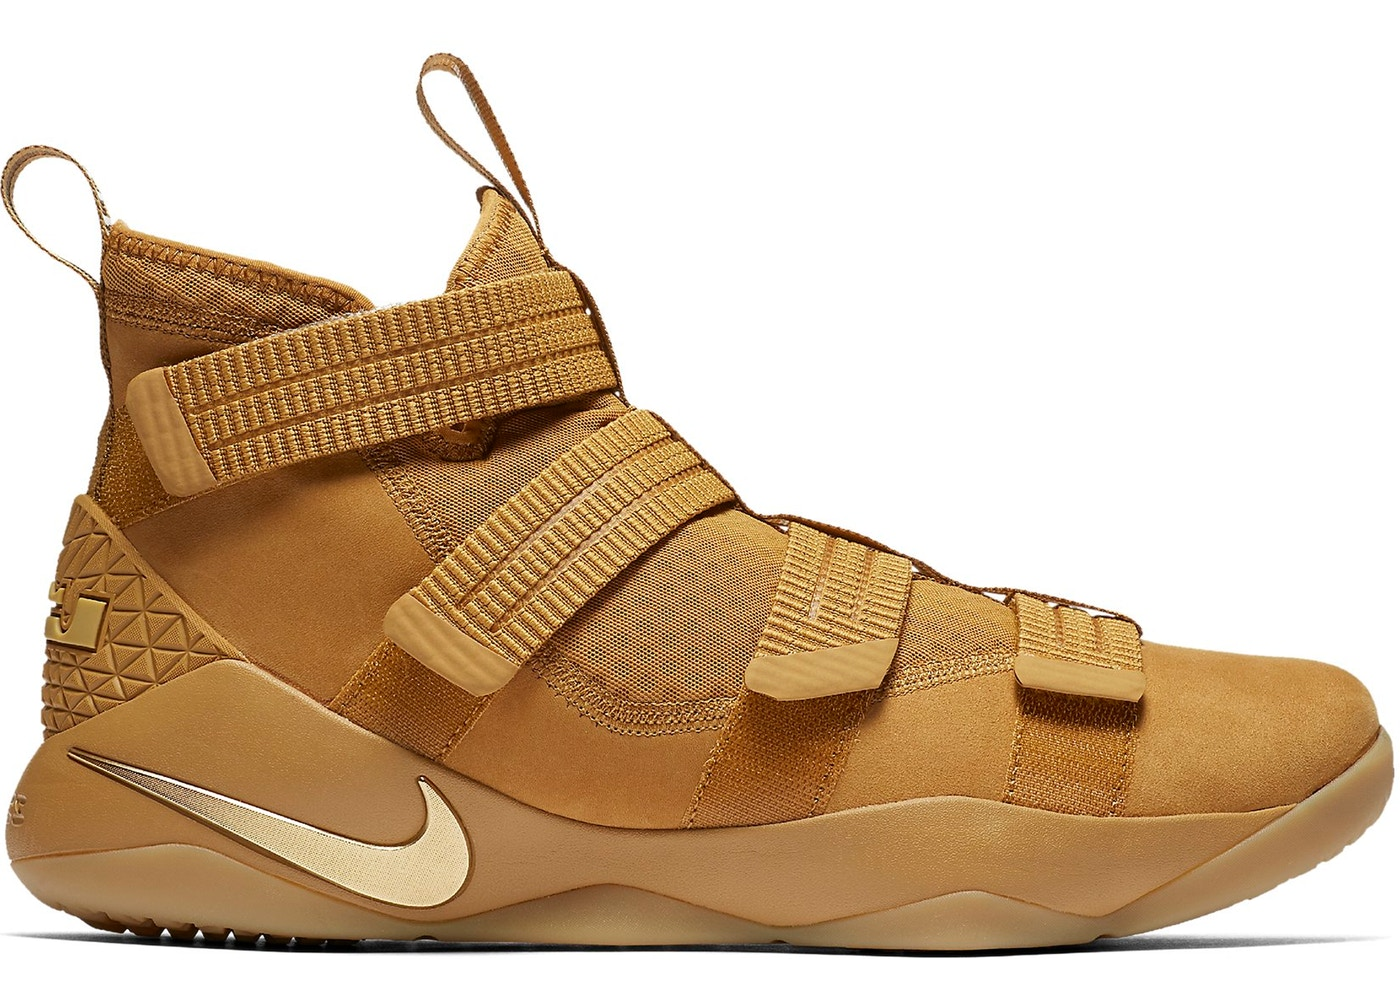 1d3373b22ec8 LeBron Zoom Soldier 11 Wheat - 897646-700